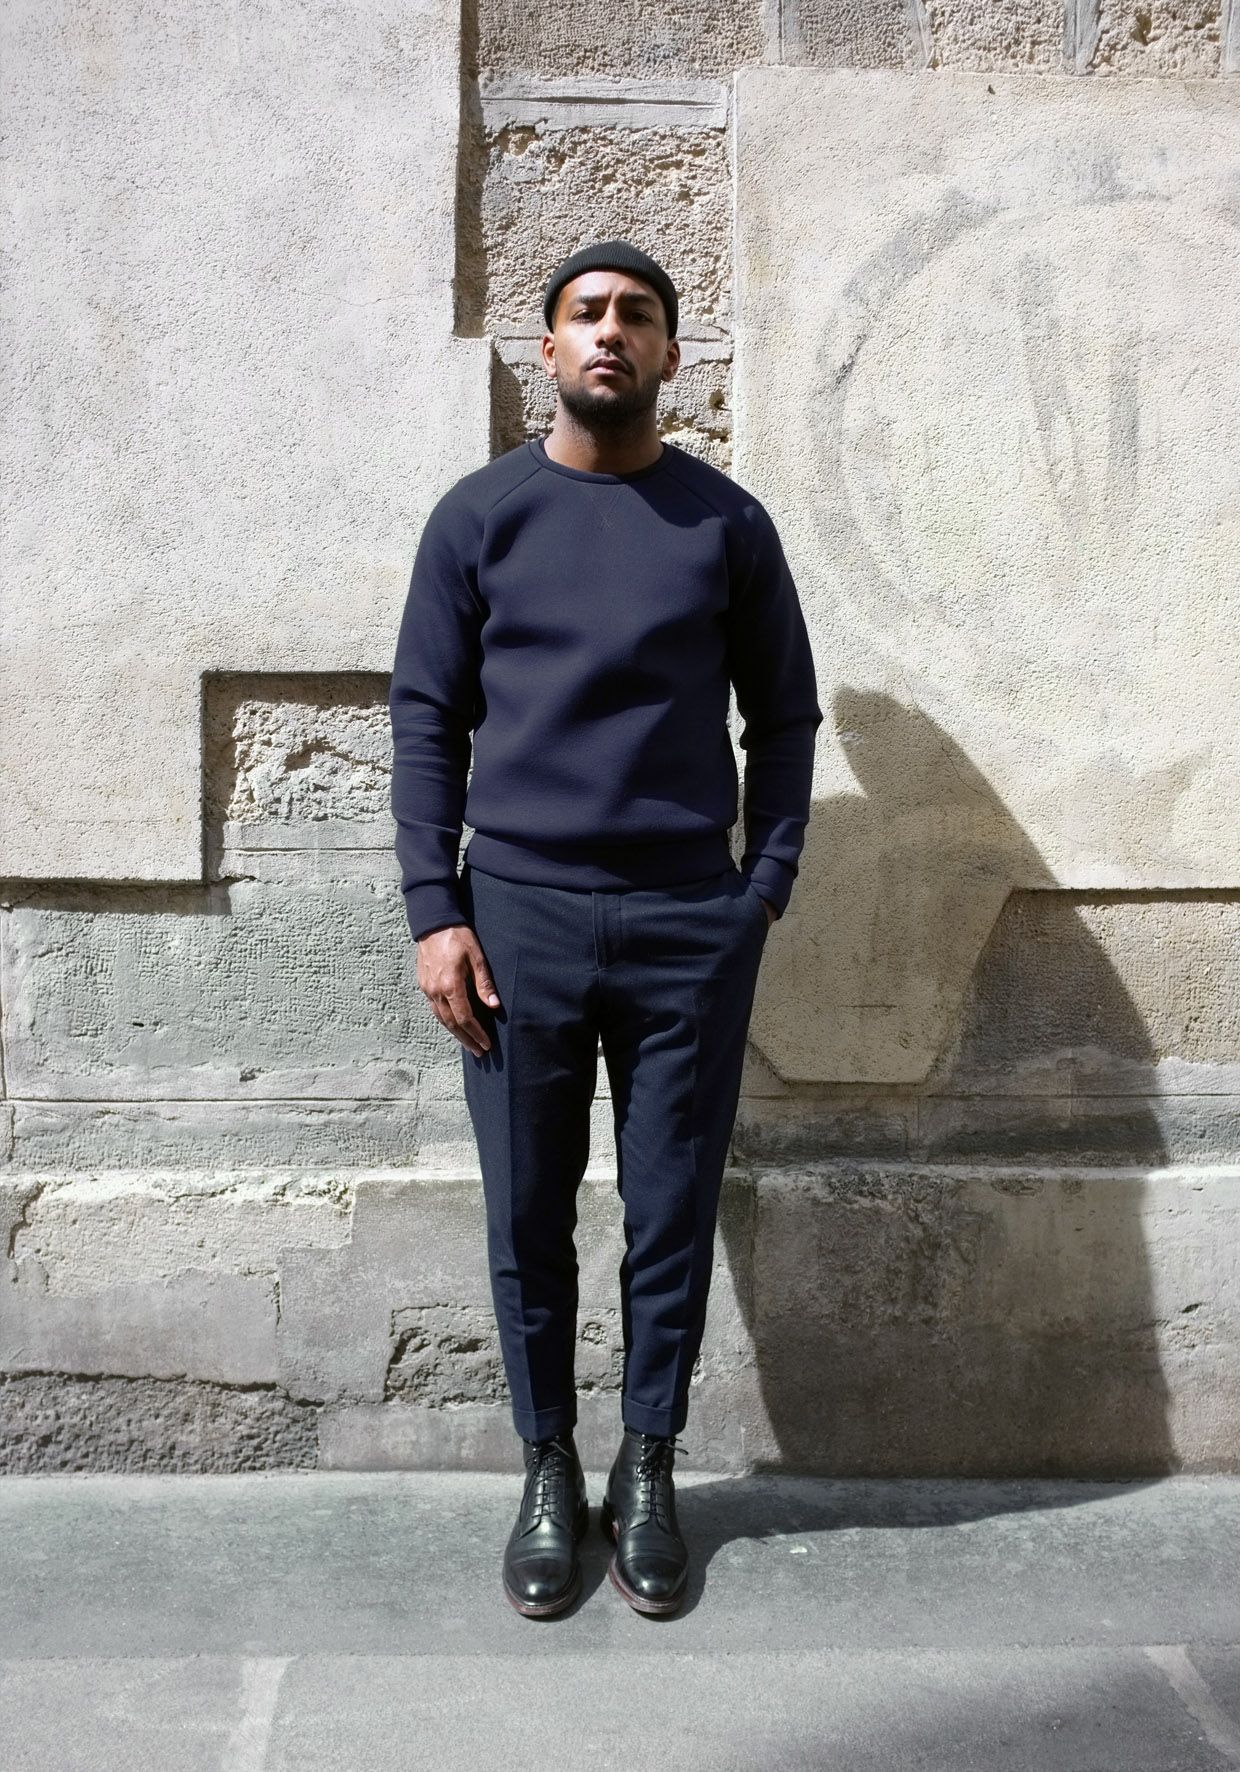 simple is beautiful black sweater men s fashion menswear